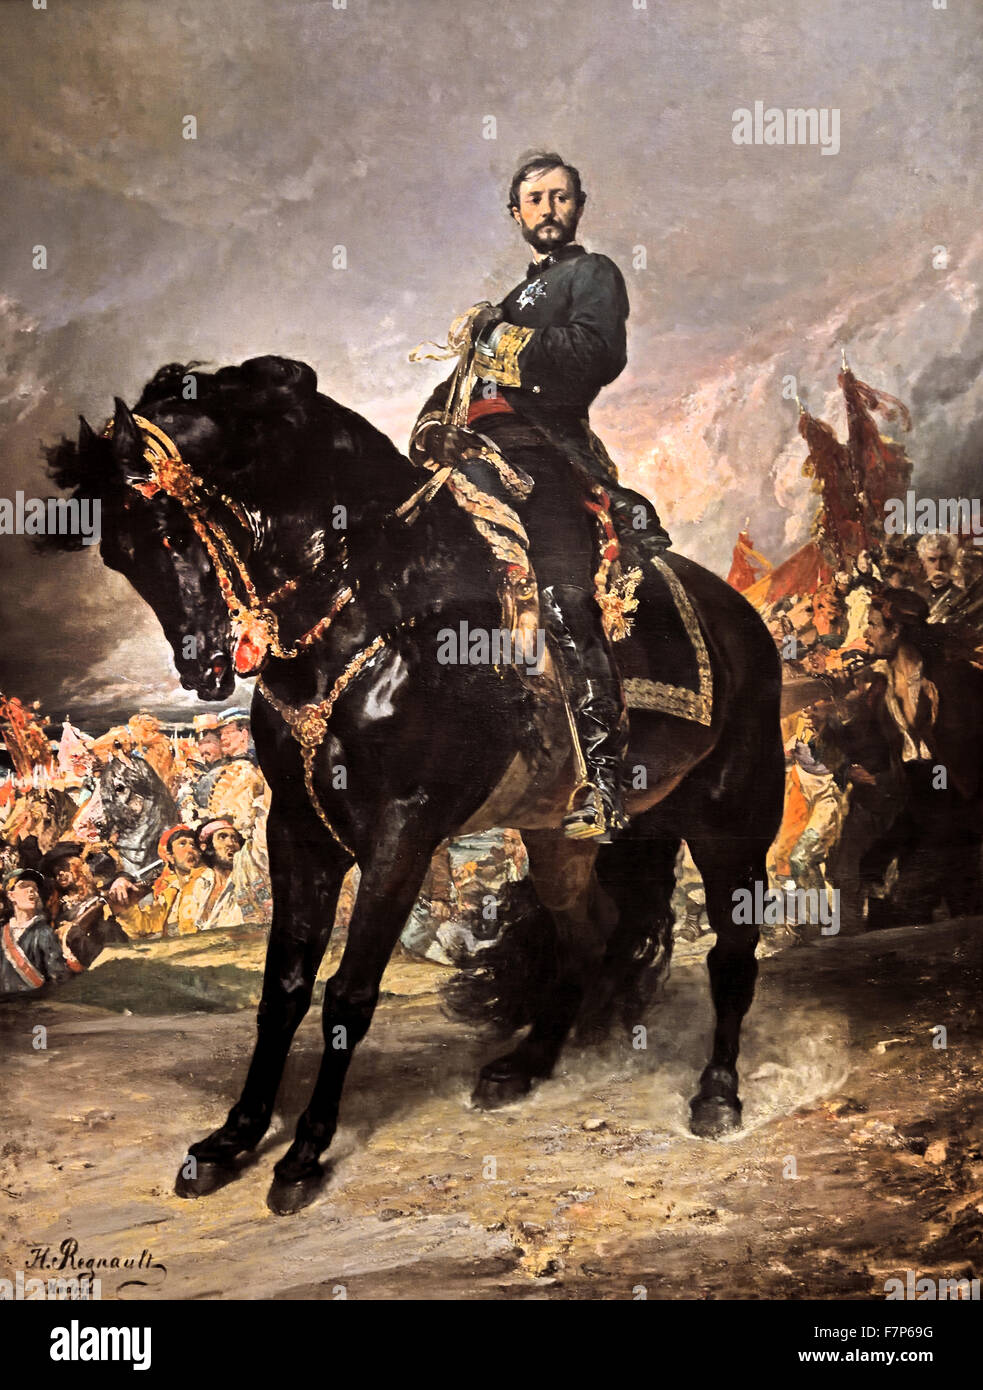 Juan Prim October 8, 1868 Henri Regnault 1843 -1871 ( Arrival of General Juan Prim (1814 - 1870) to Madrid riding Stock Photo